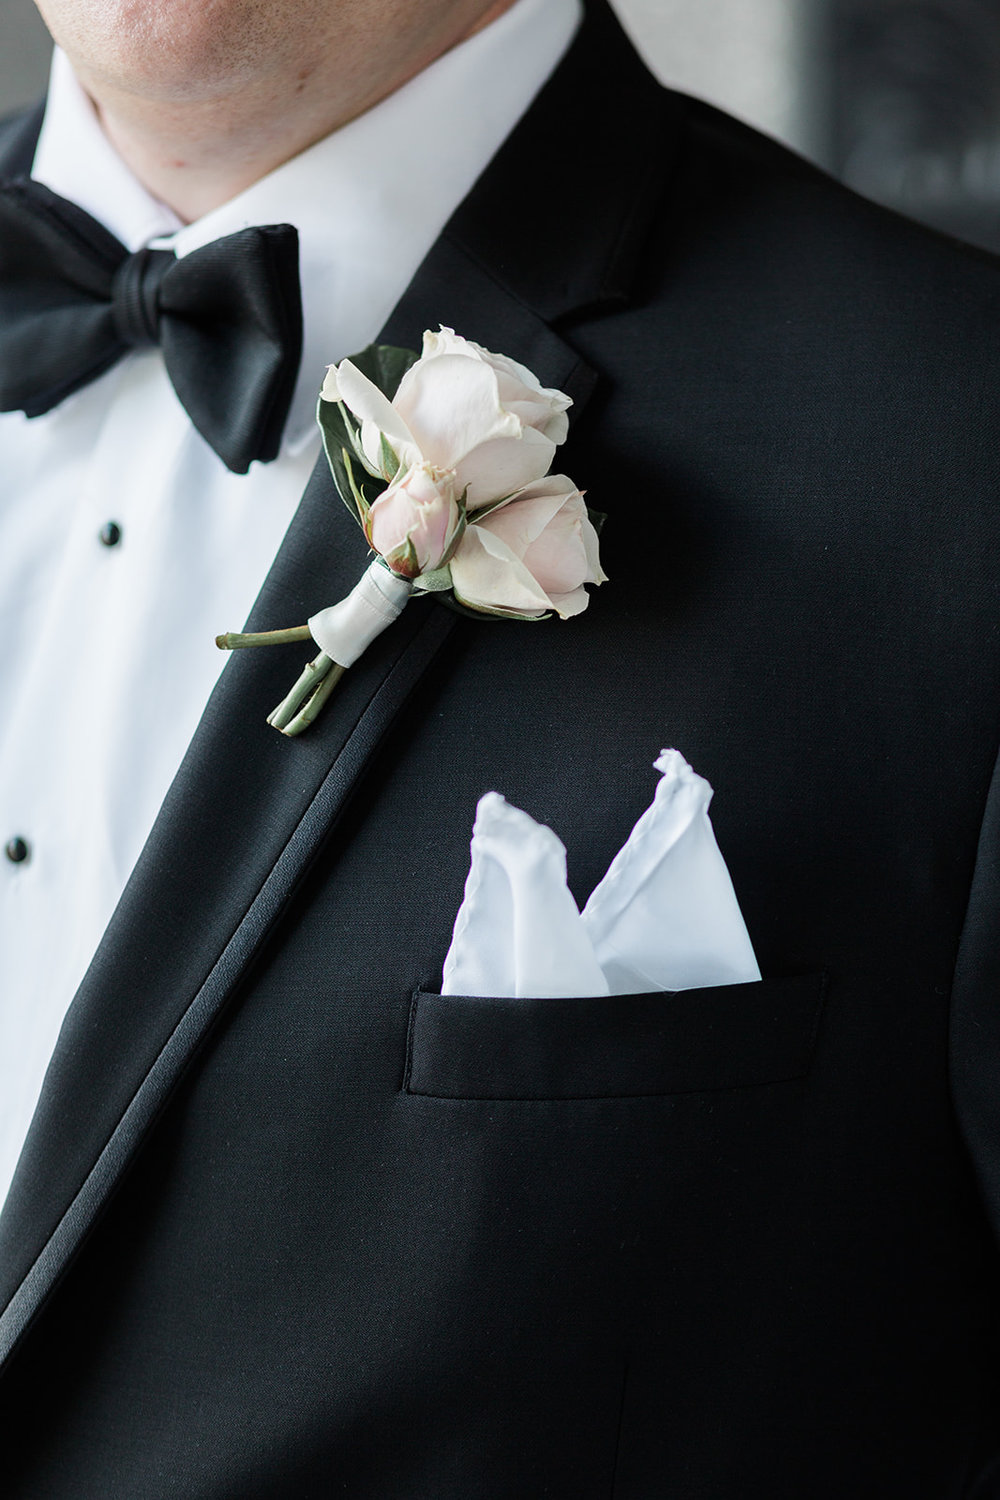 Groom's wedding style in black tuxedo and bow tie for Pittsburgh wedding at PNC Park planned by Exhale Events. Find more wedding inspiration at exhale-events.com!